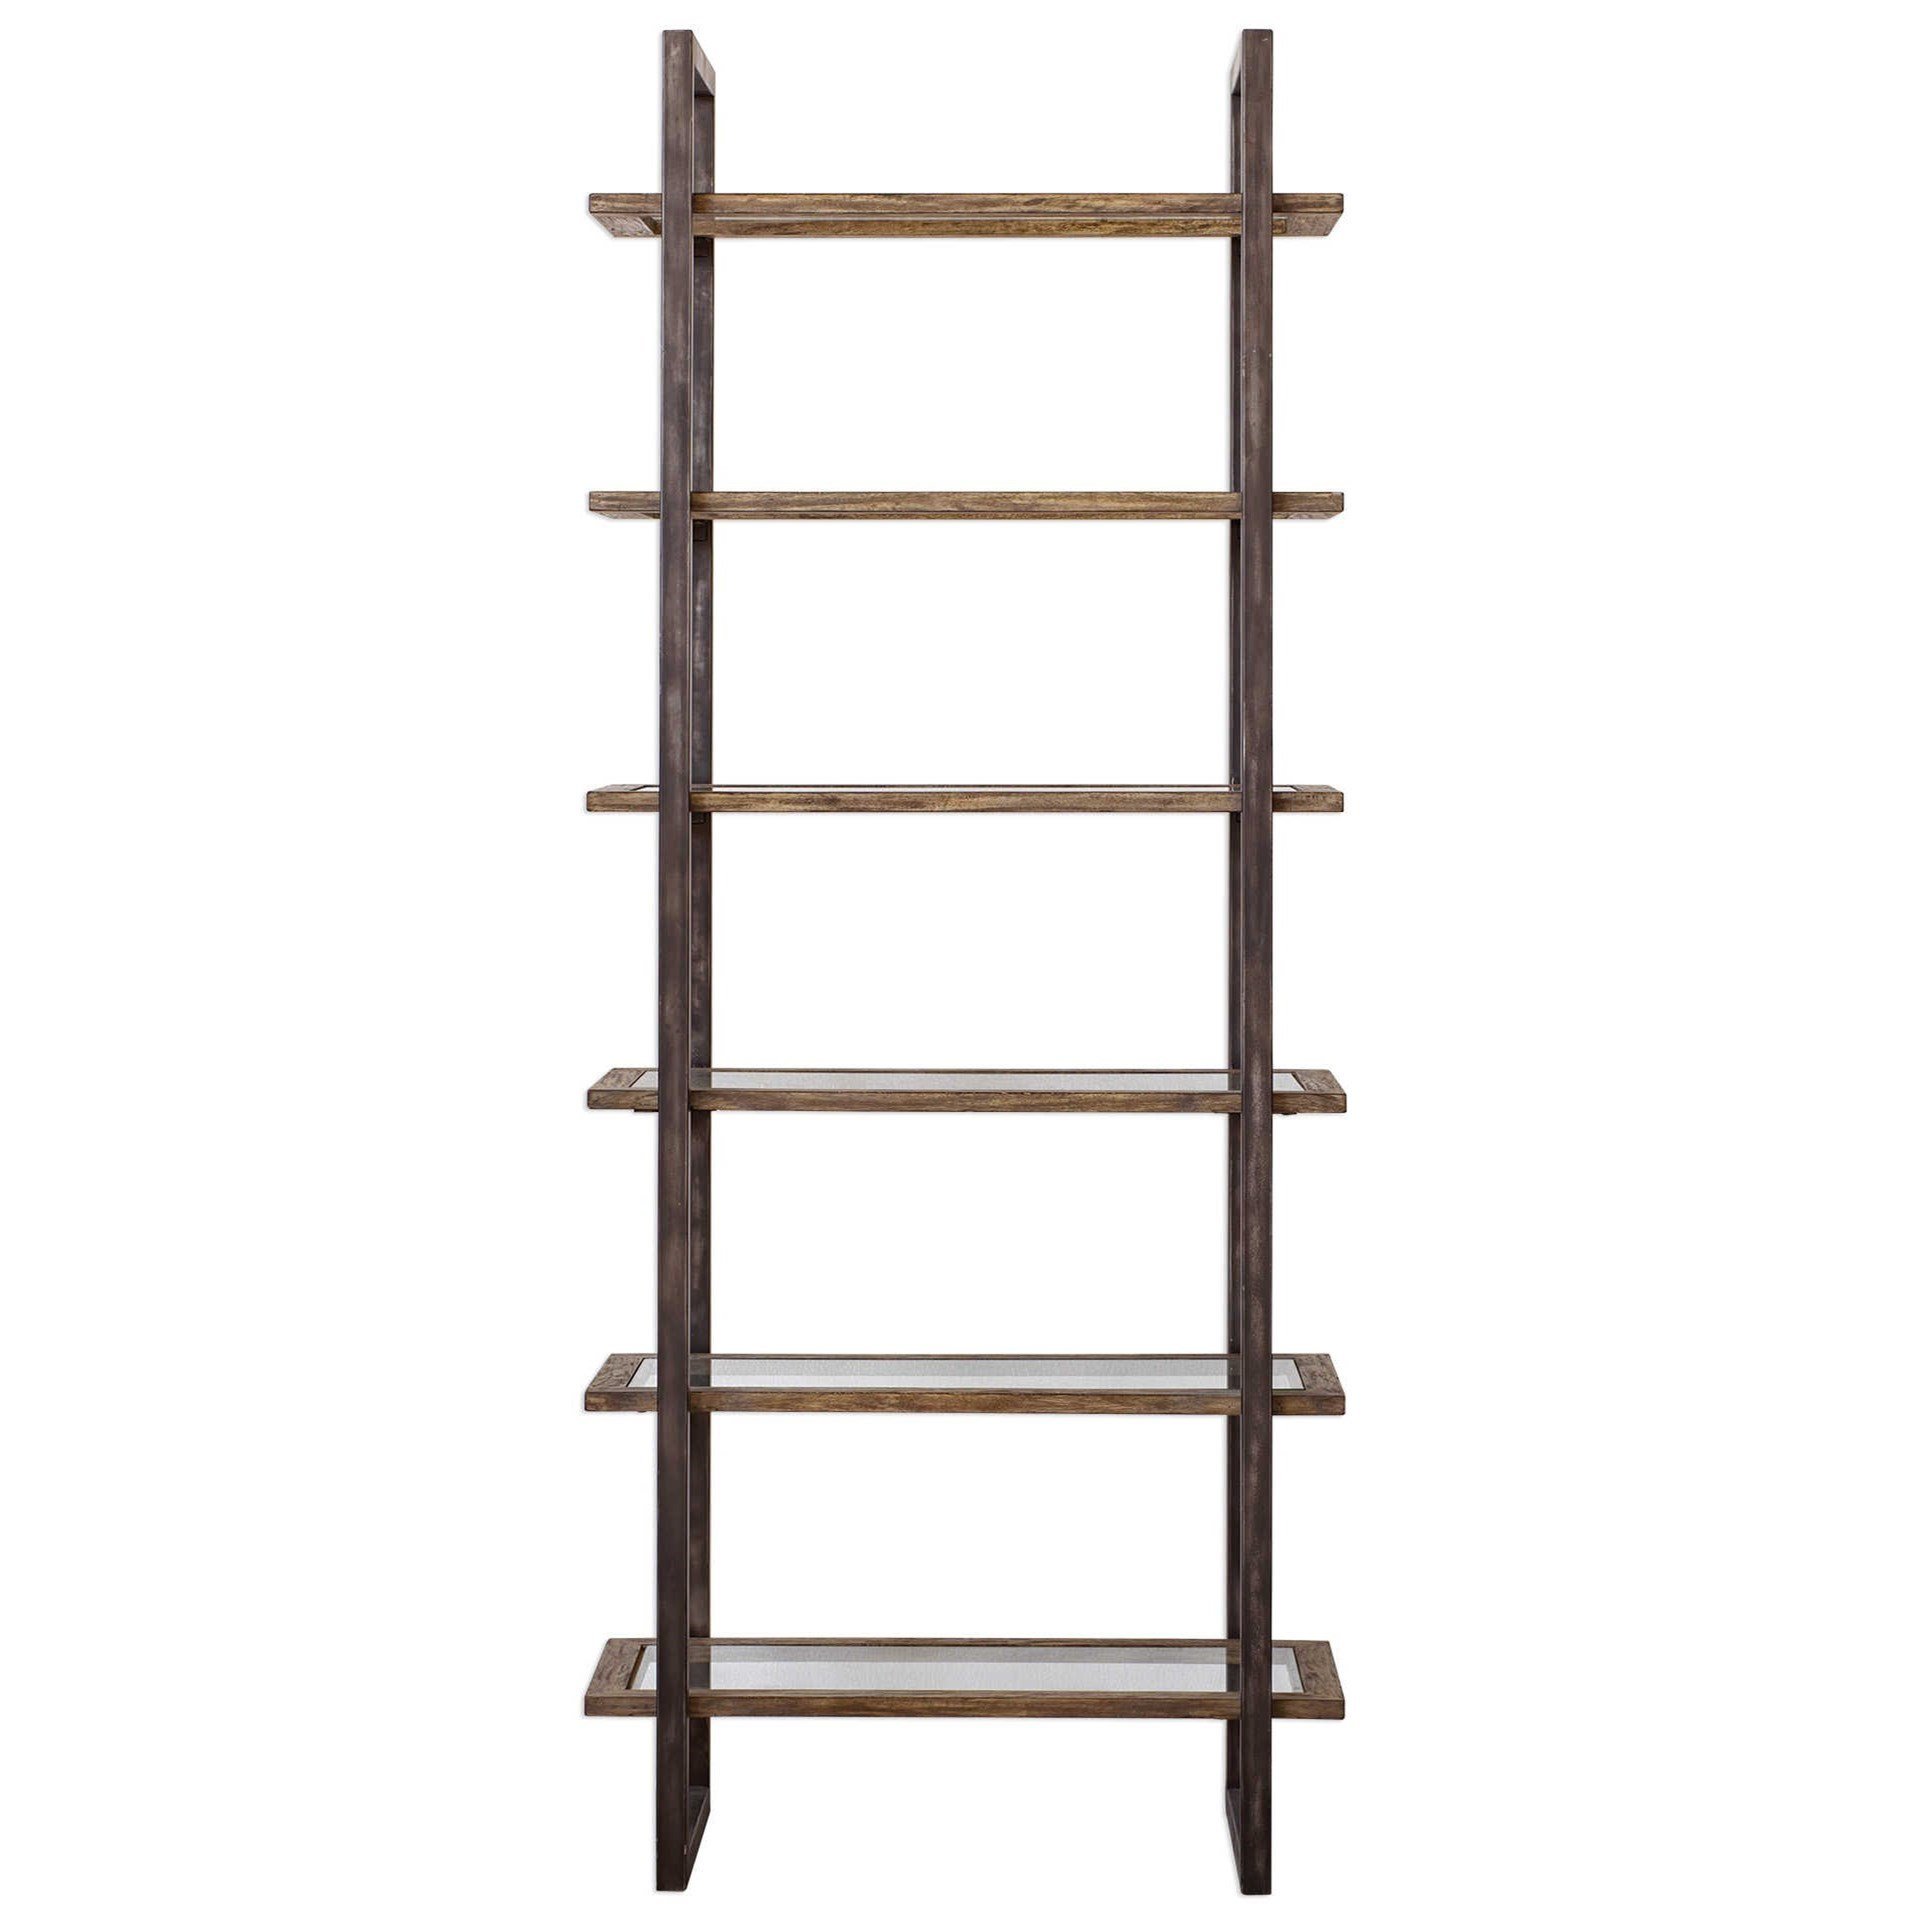 Accent Furniture - Bookcases Olwyn Industrial Etagere by Uttermost at Dream Home Interiors